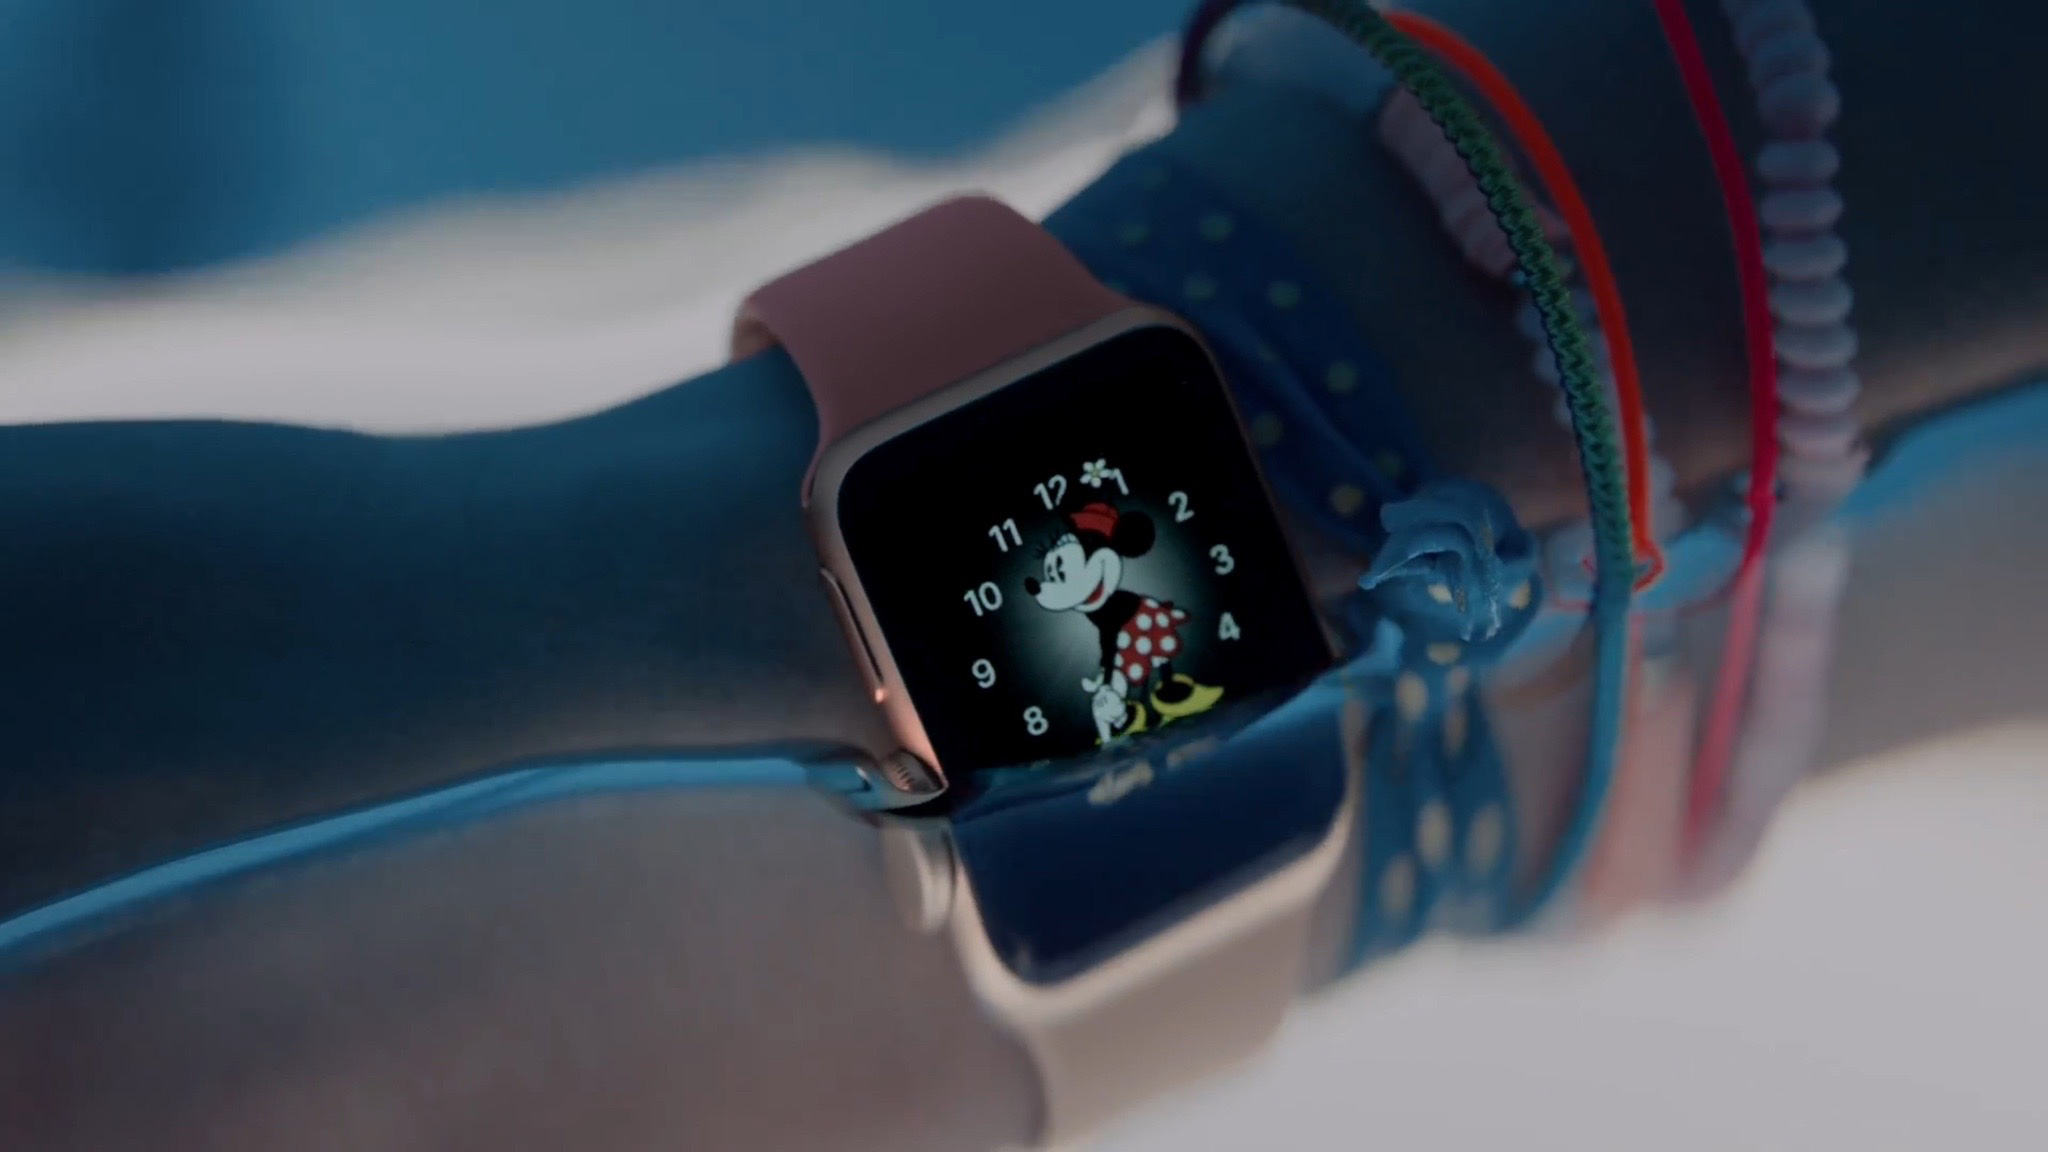 Apple Watch Series 2 ad